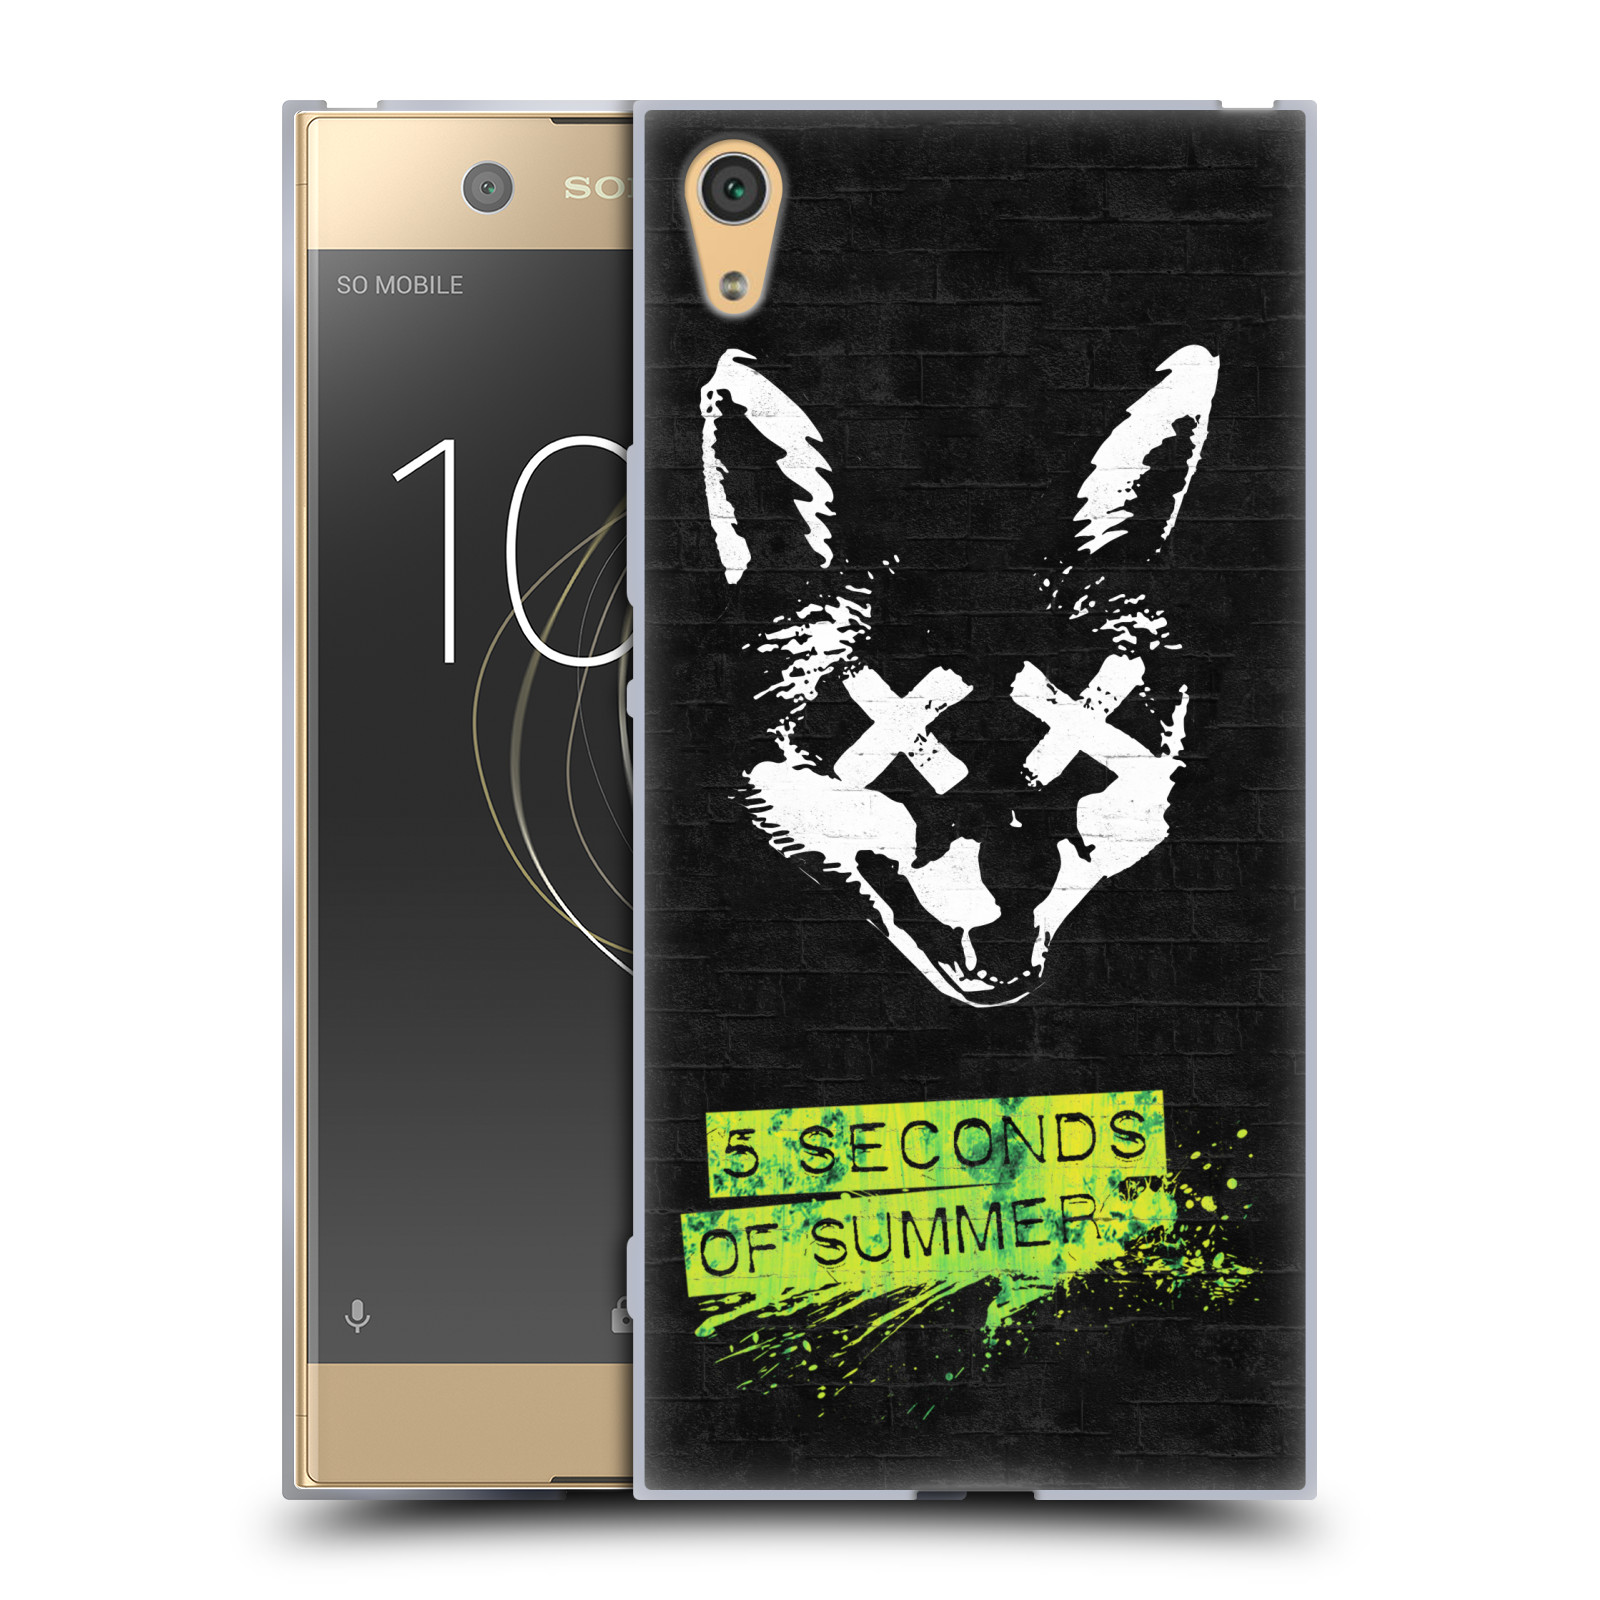 Silikonové pouzdro na mobil Sony Xperia XA1 Ultra - Head Case - 5 Seconds of Summer - Fox